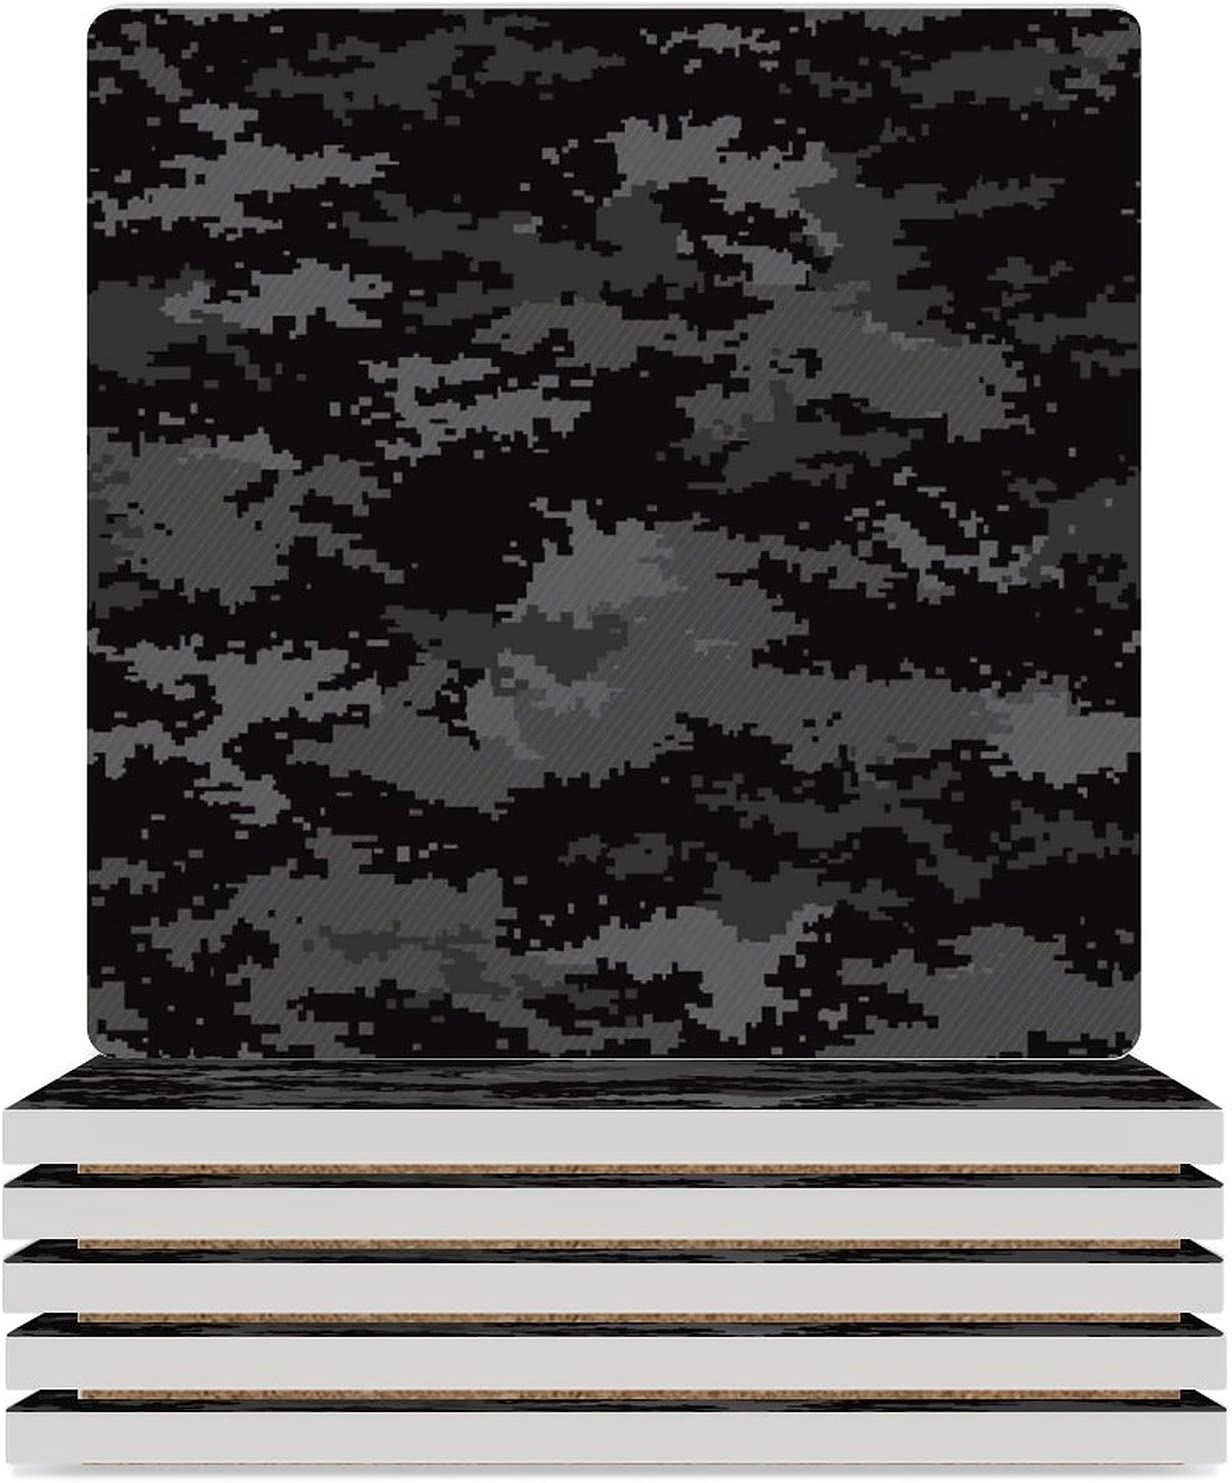 Pixel Camouflage Fresno Mall Stealth Black Absorbent Seasonal Wrap Introduction Drink Coasters Coaster